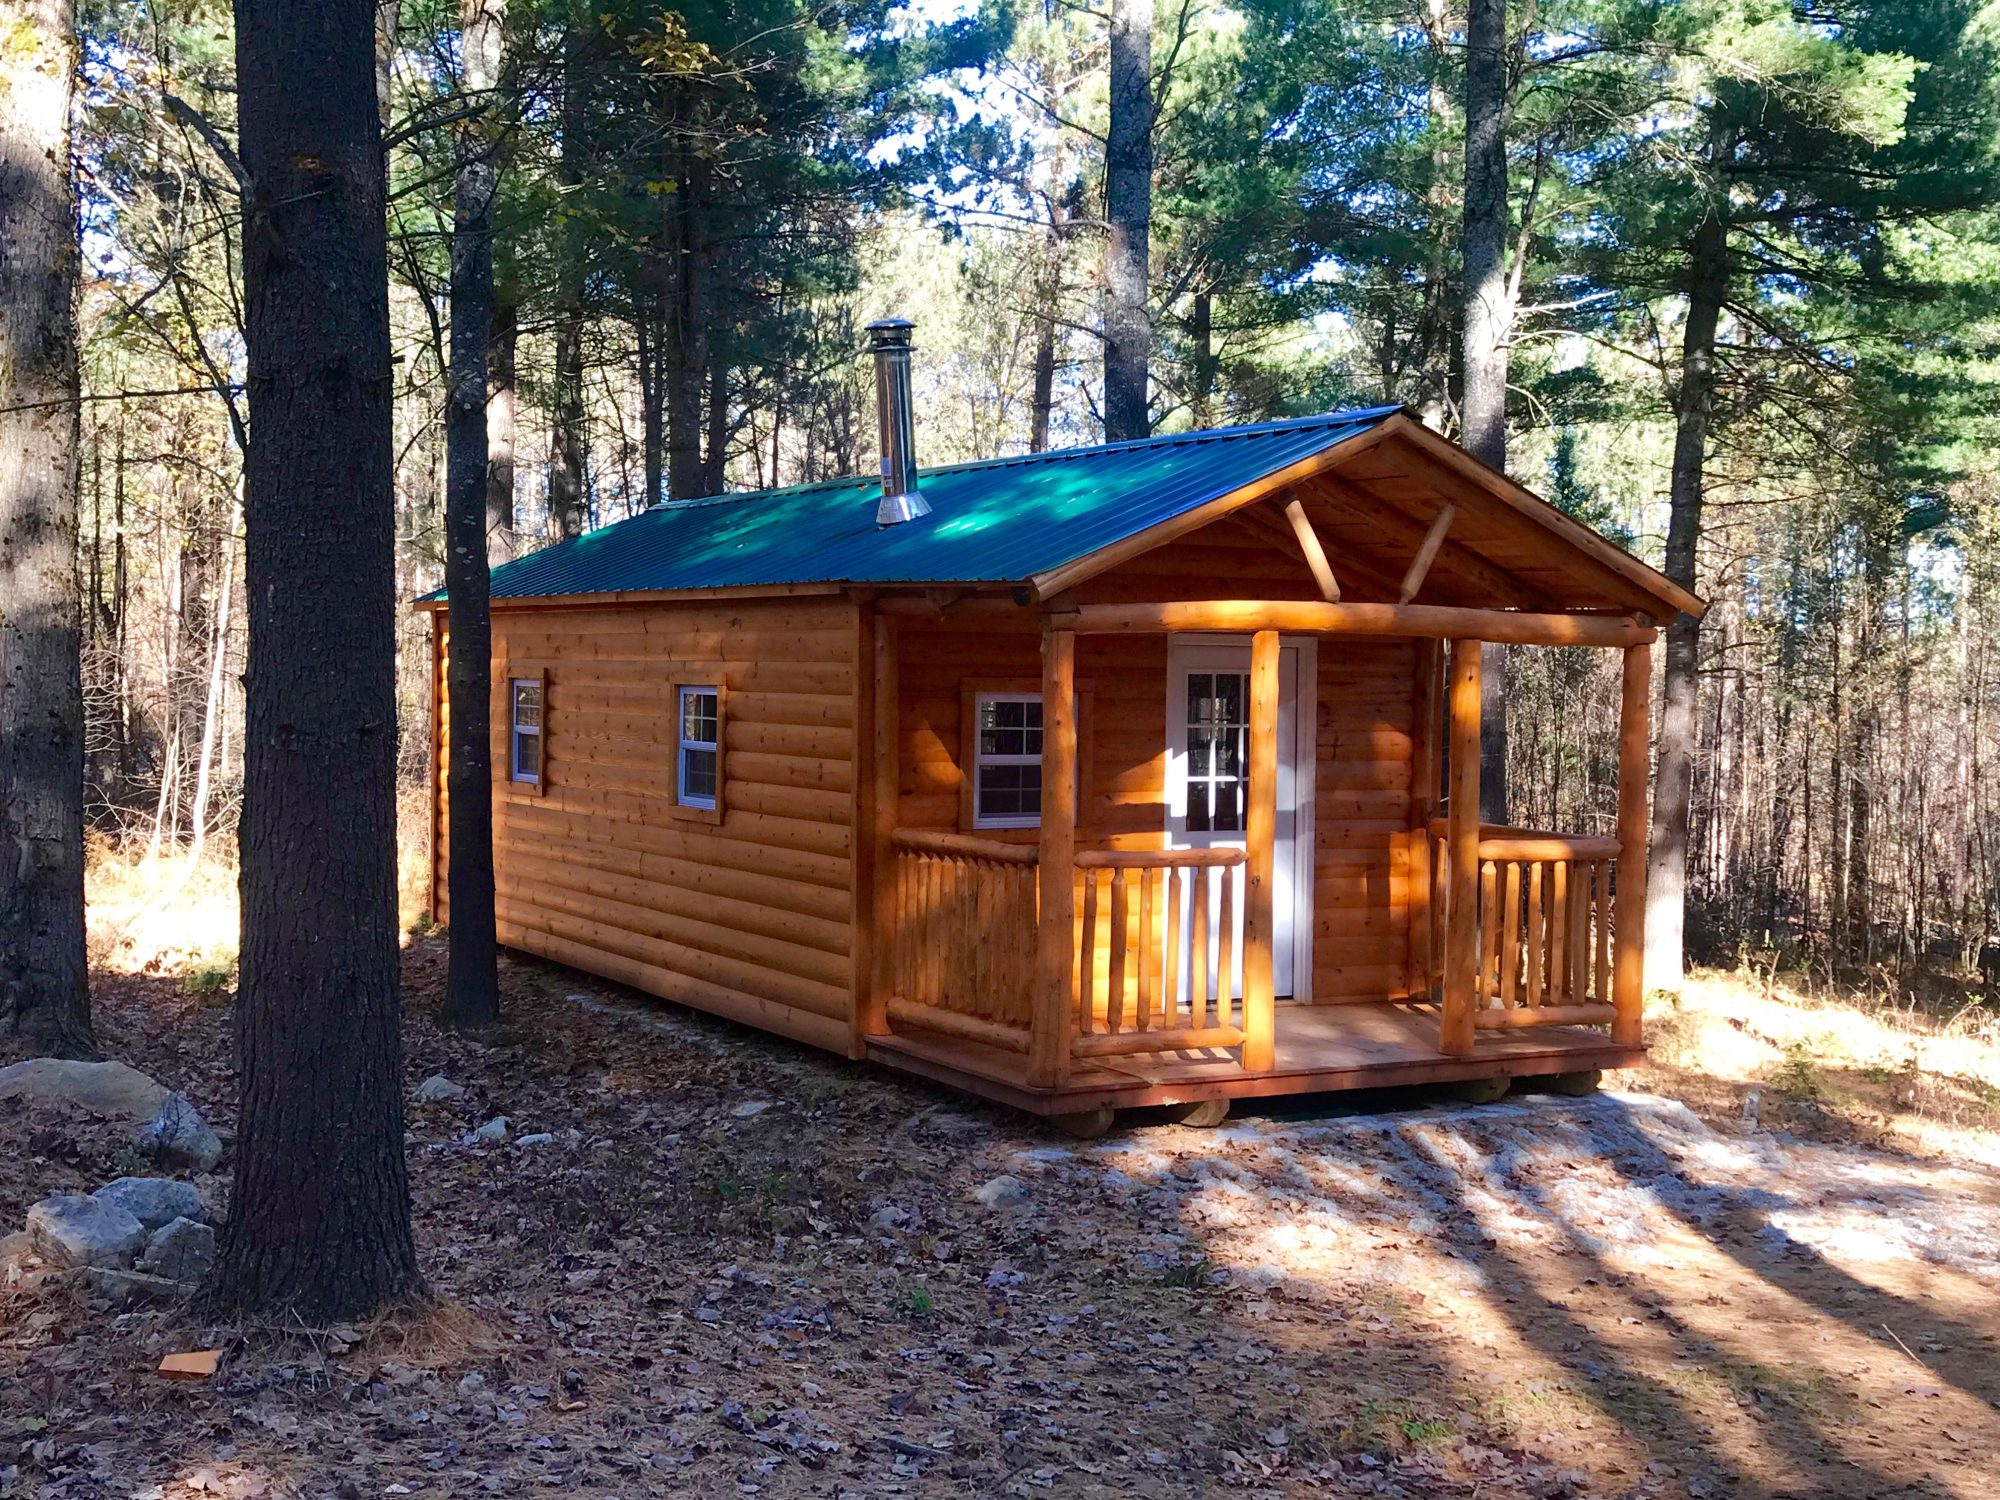 land with adirondack log cabins for sale rh adirondackmtland com adirondack cabins for sale by owner adirondack camps/cabins for sale